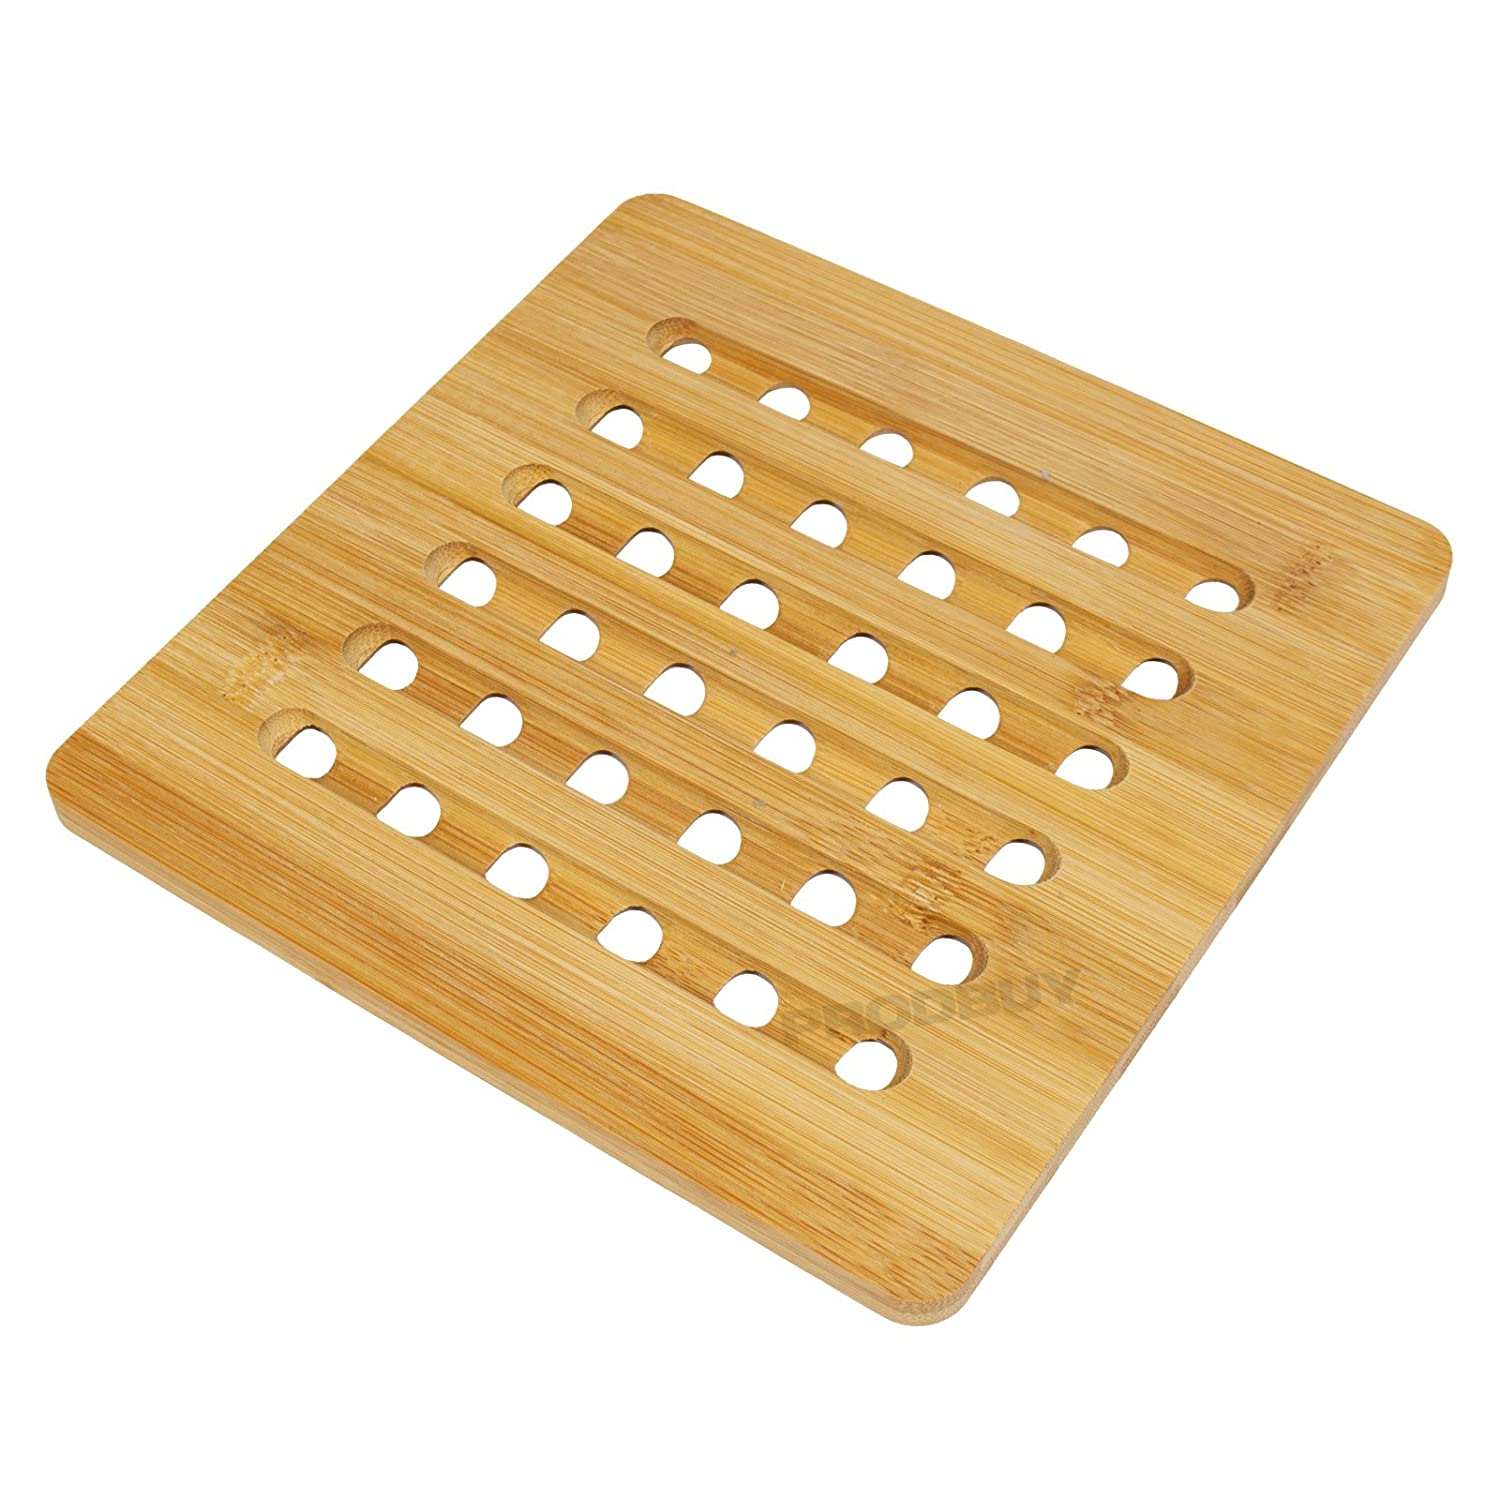 20cm x 20cm Square Bamboo Kitchen Trivet ProdBuy Limited